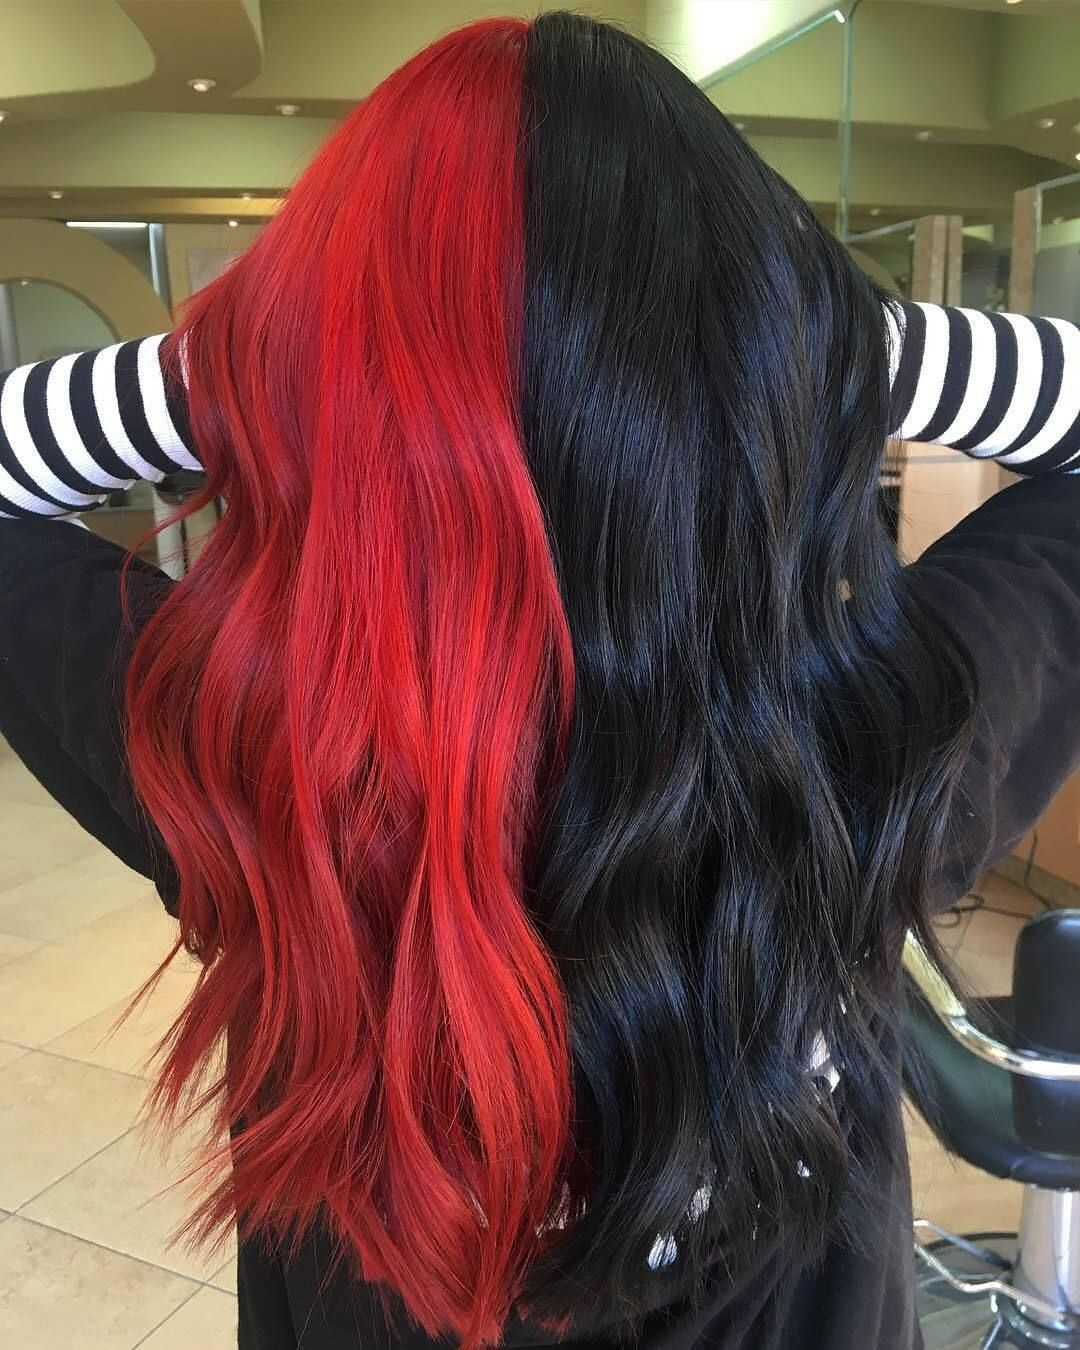 I Got An Idea To Dye My Hair This Color What Do You Guys Think Hair Beauty Skin Deals Me Fashion In 2020 Hair Color For Black Hair Split Dyed Hair